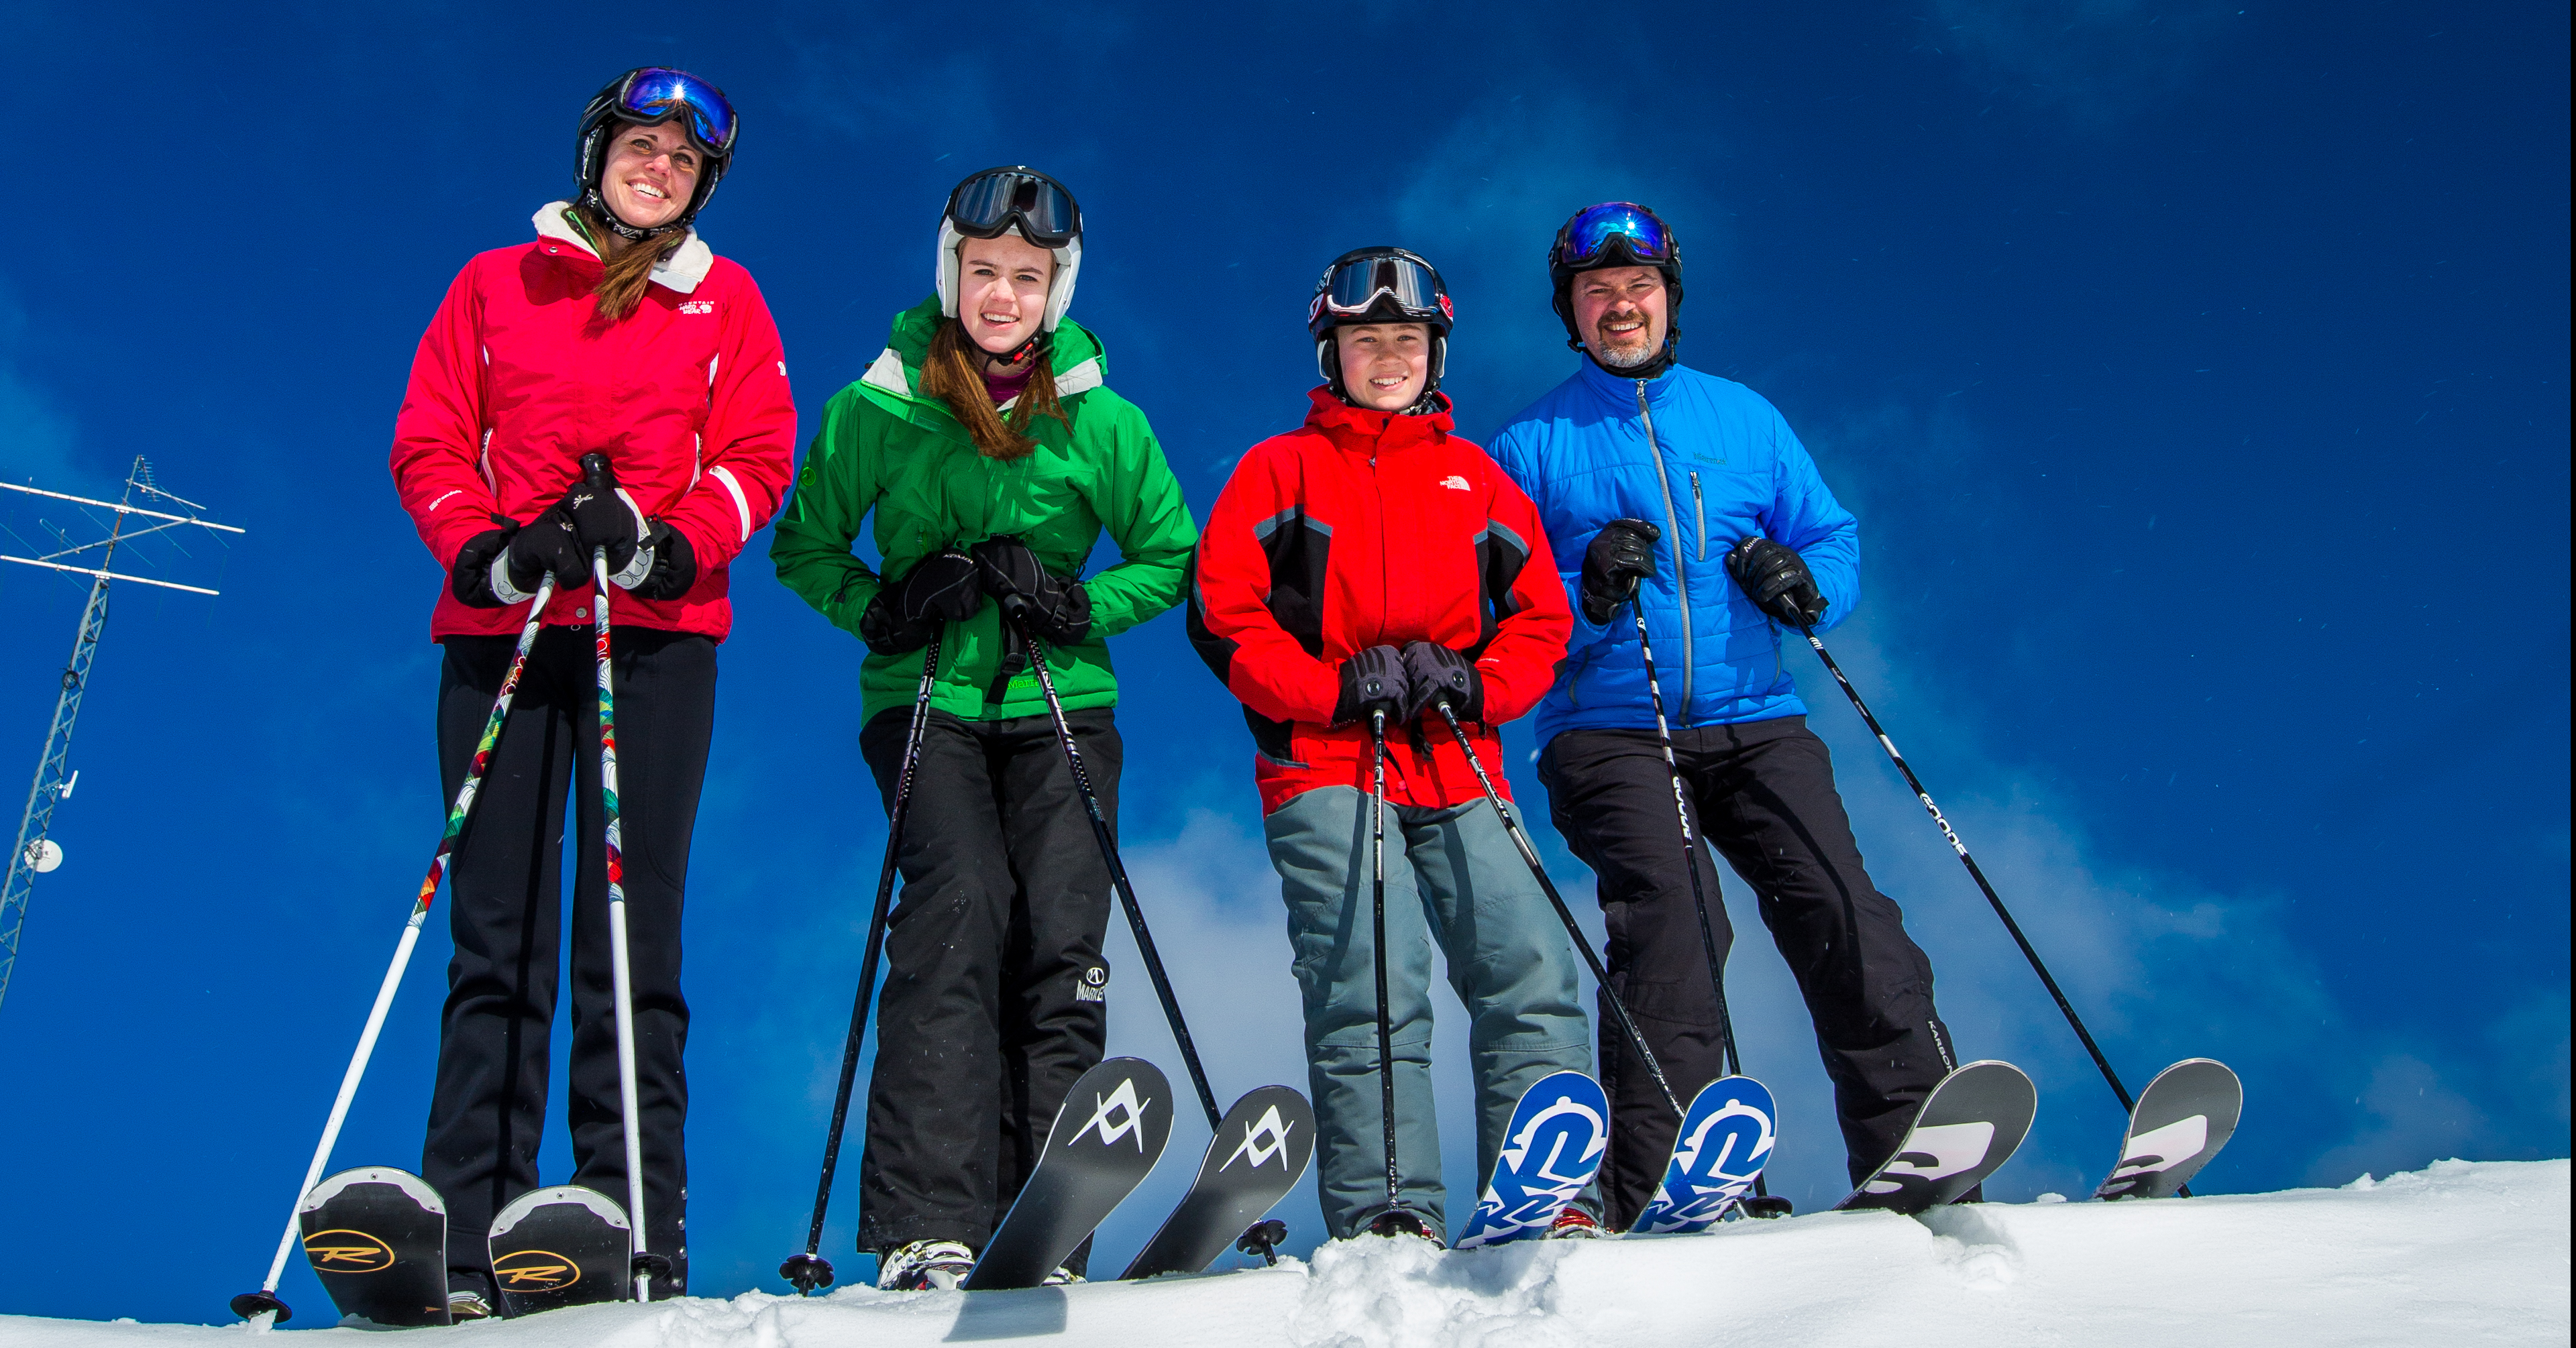 A group of four smiling people in full ski gear are ready to enjoy a sunny day on the slopes at Treetops Resort.